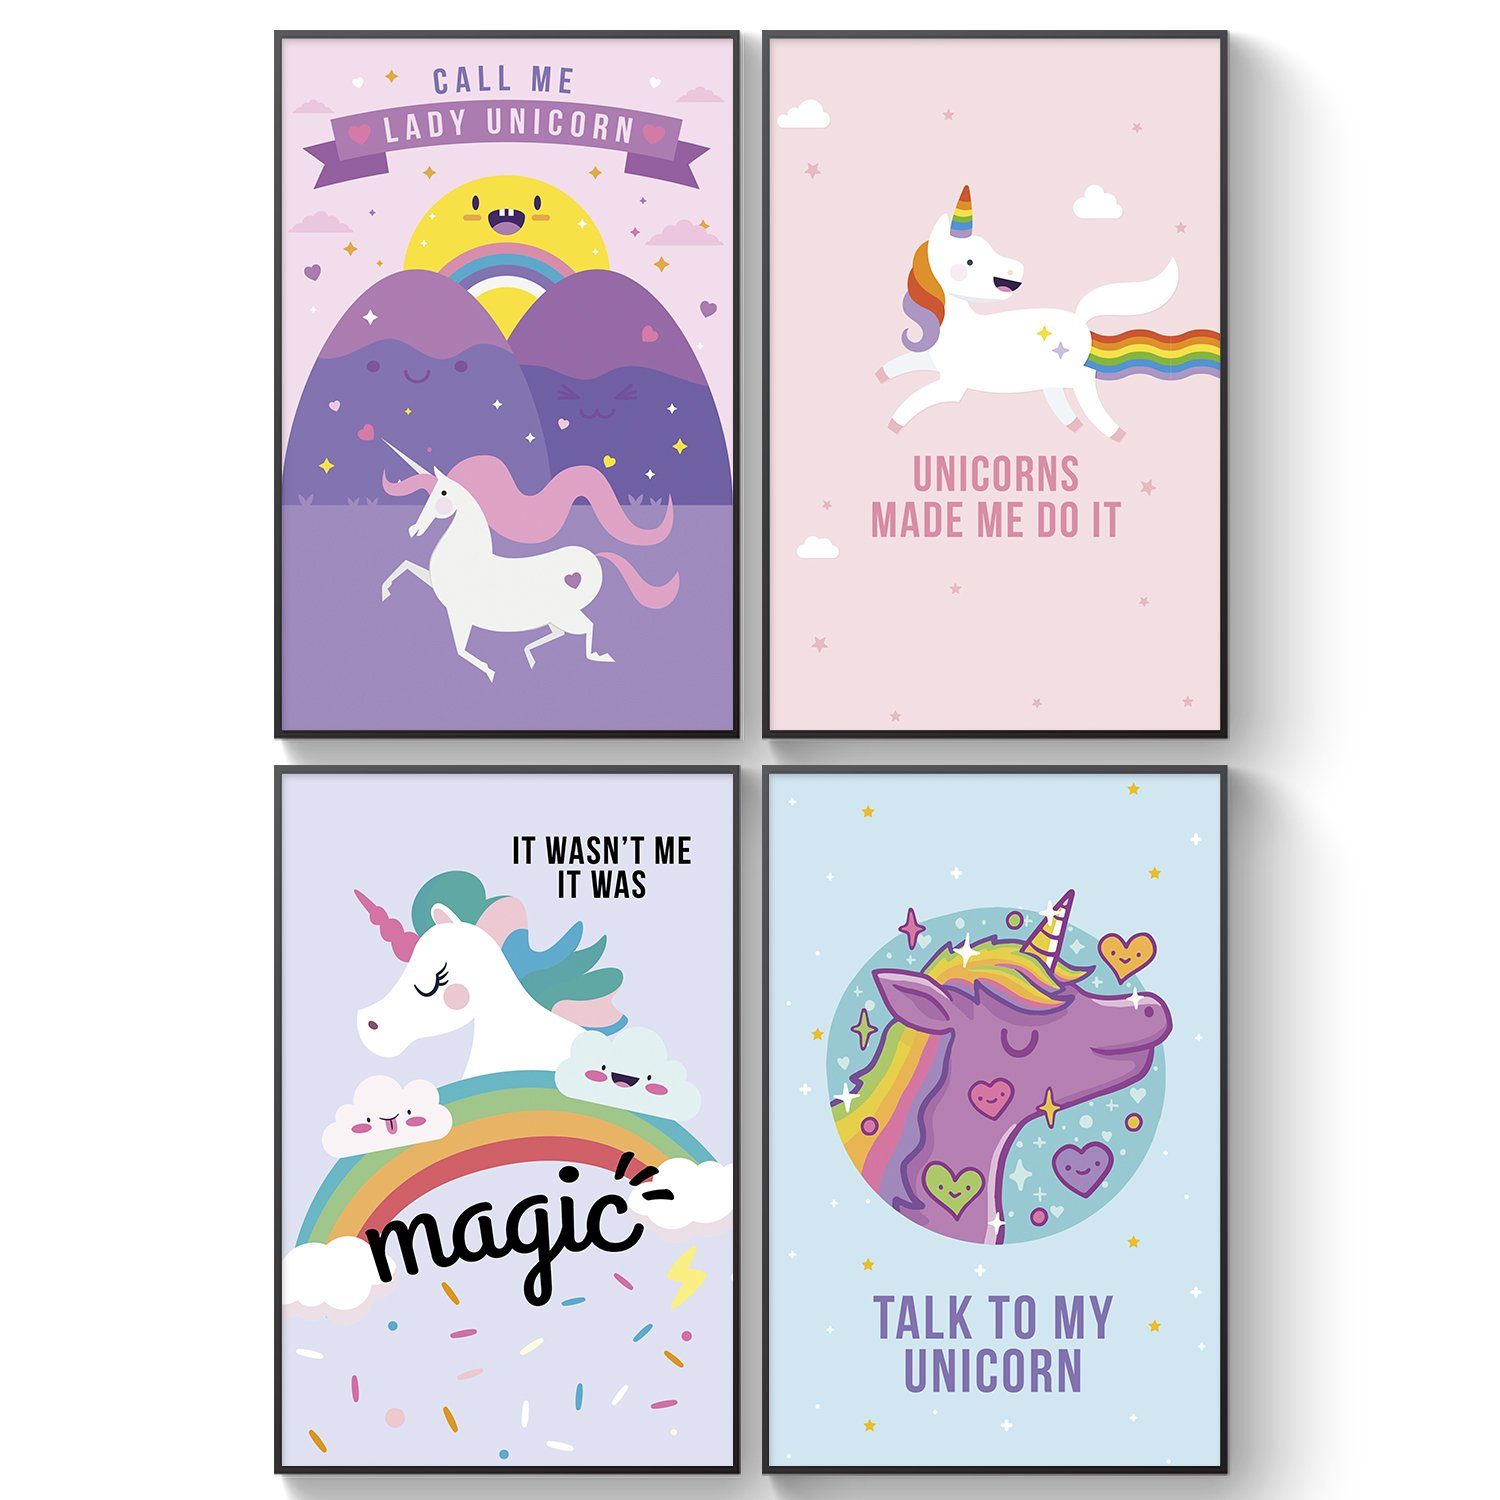 Pillow & Toast Unicorn Rainbow Wall Art: Set of FOUR 11 x 17'' Posters for Girls Bedroom, Teens GOOD VIBES to Decorate Room - 4-Pack, Girly Magical Unicorns. by Pillow & Toast